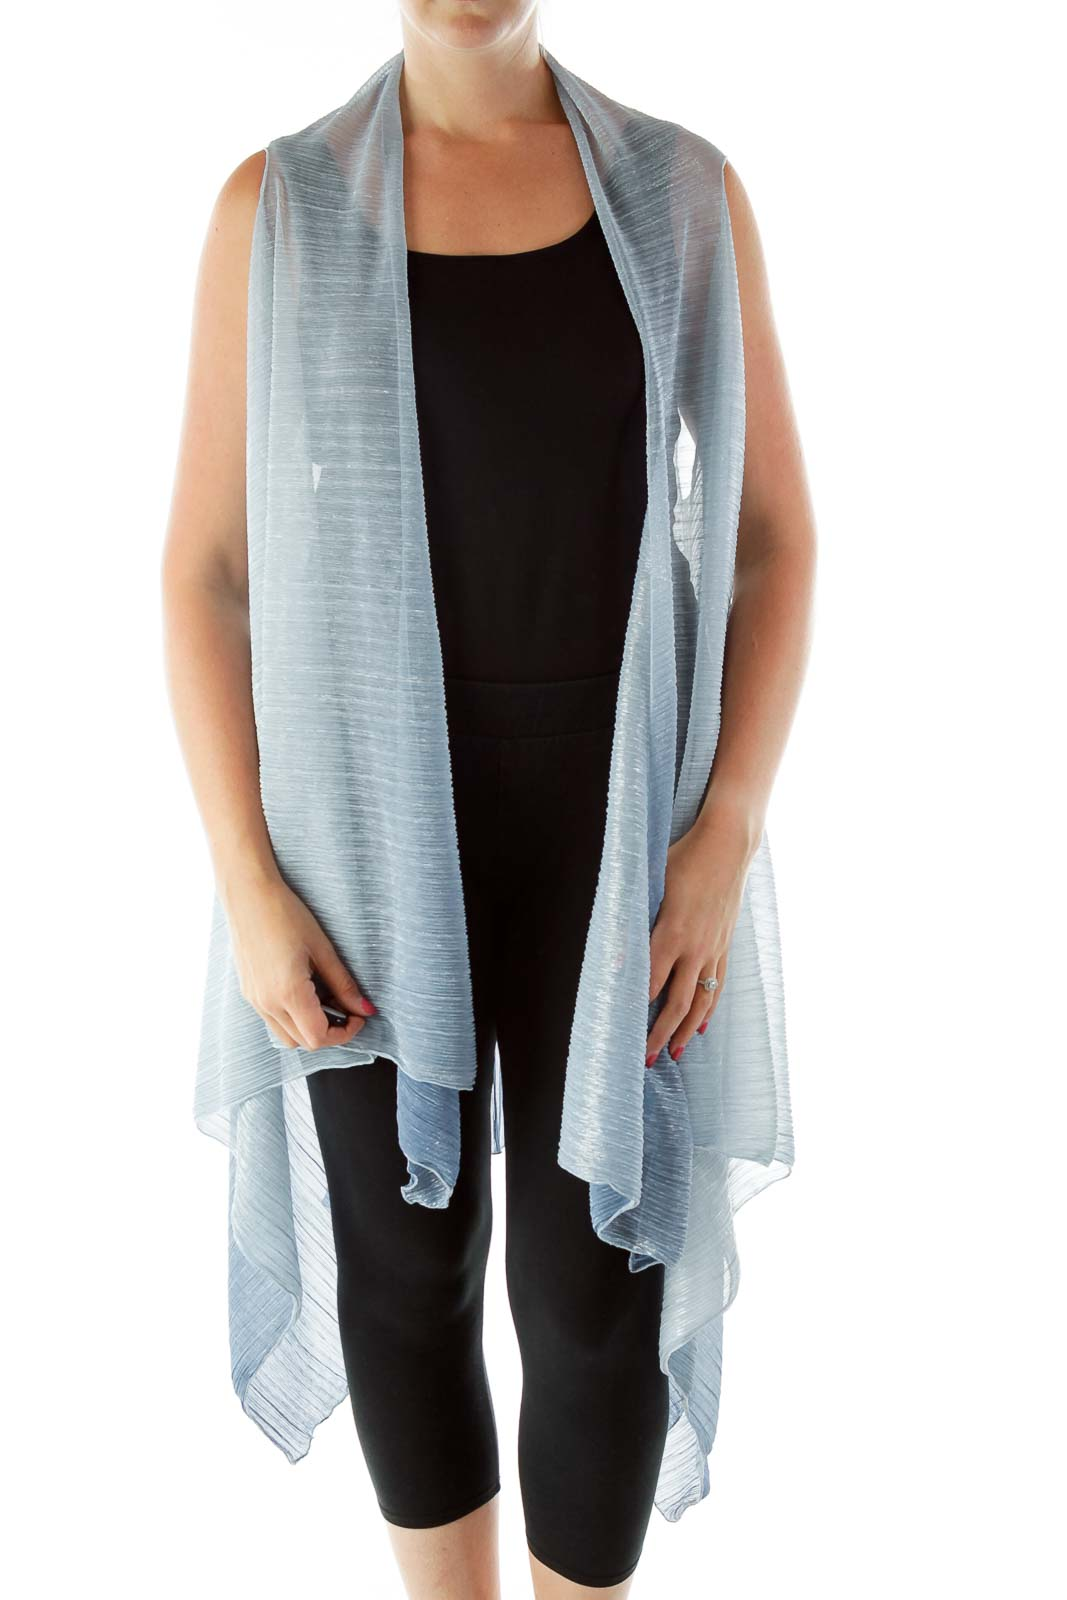 Blue Silver Sparkly Ombre Vest